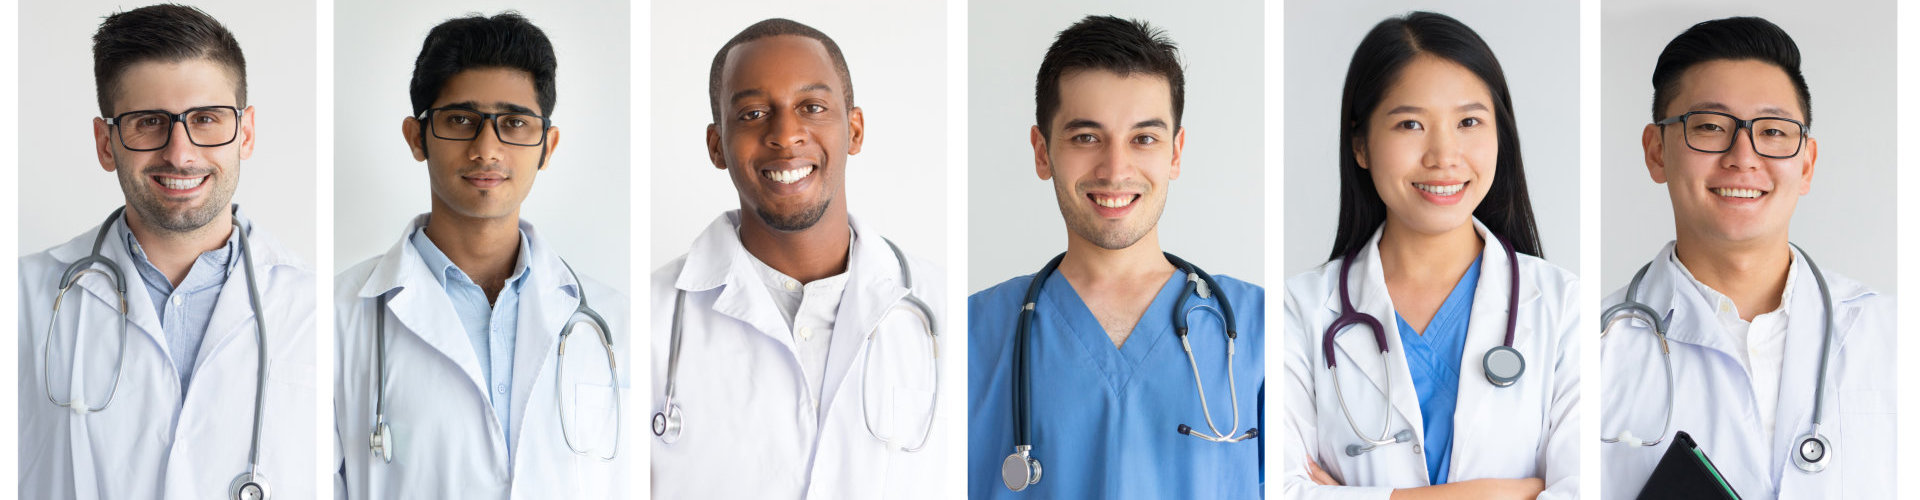 Set of young smiling junior medical staff wearing white uniform. Doctors of different nationalities and ethnicities looking positive, content and cheerful. Future medicine concept. Healthcare concept